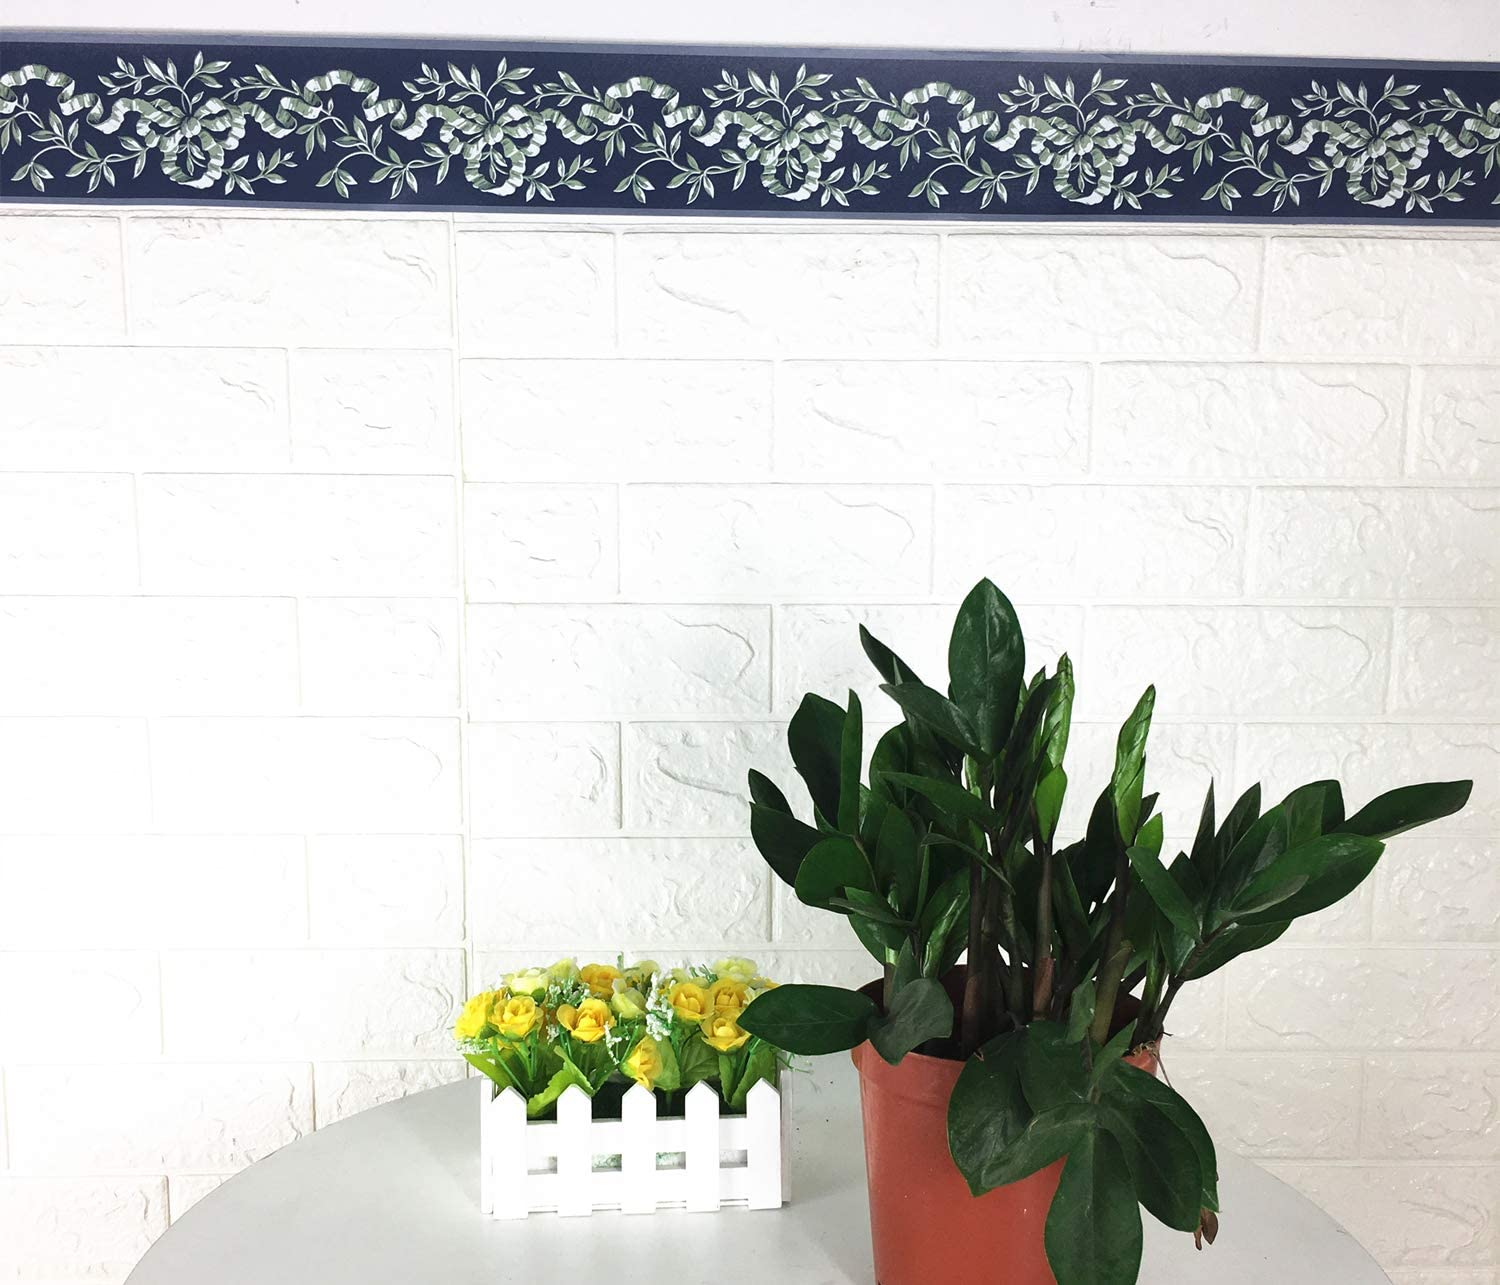 Wallpaper Borders Blue Floral Molding Wallpaper Border Peel Stick Home Ceiling Decorative Border For Bathroom Living Room Kitchen 4inch By 32 8inch Tools Home Improvement